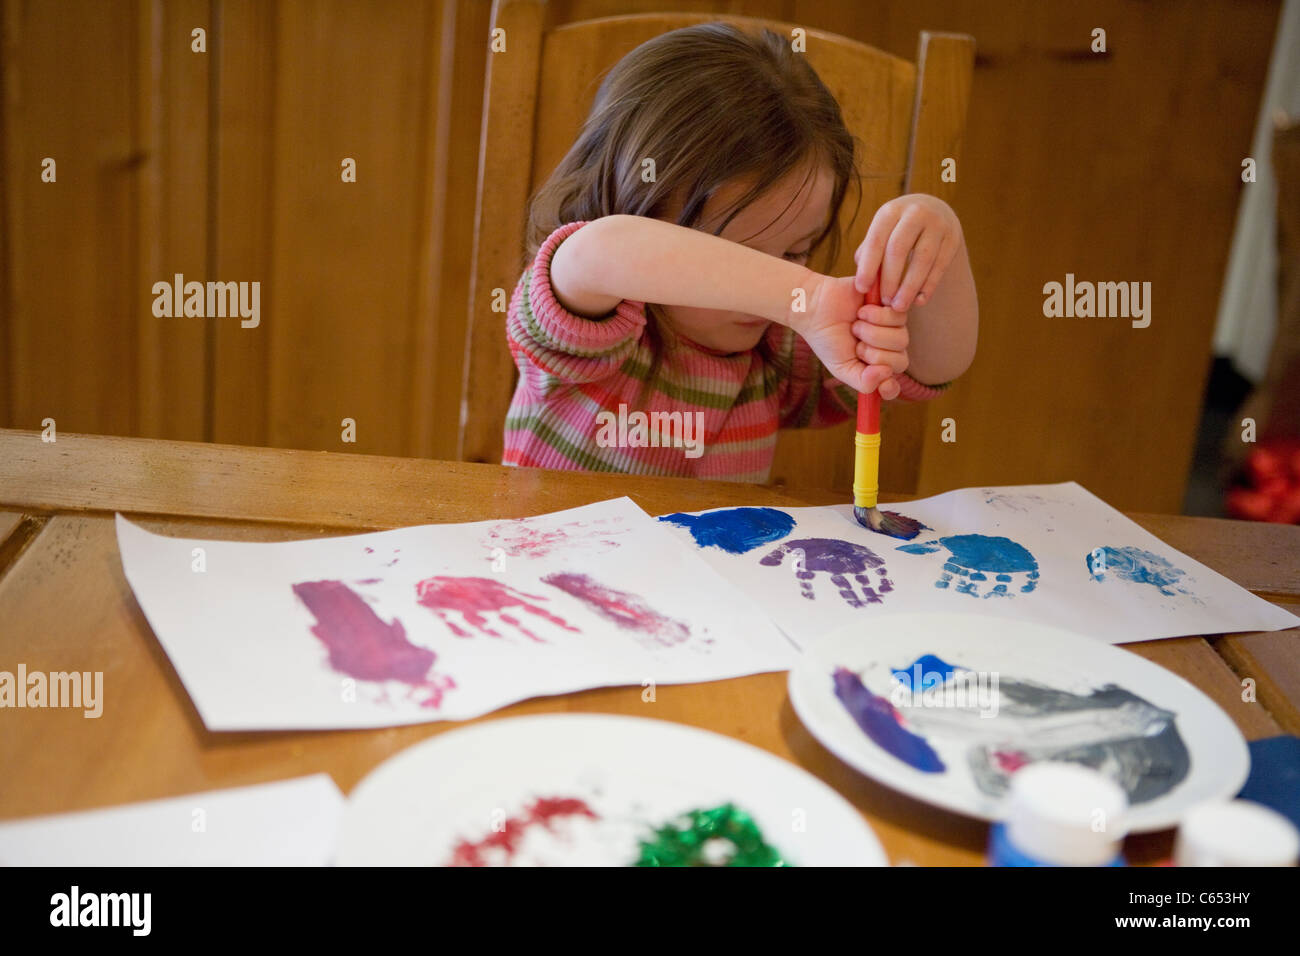 Young girl painting pictures - Stock Image